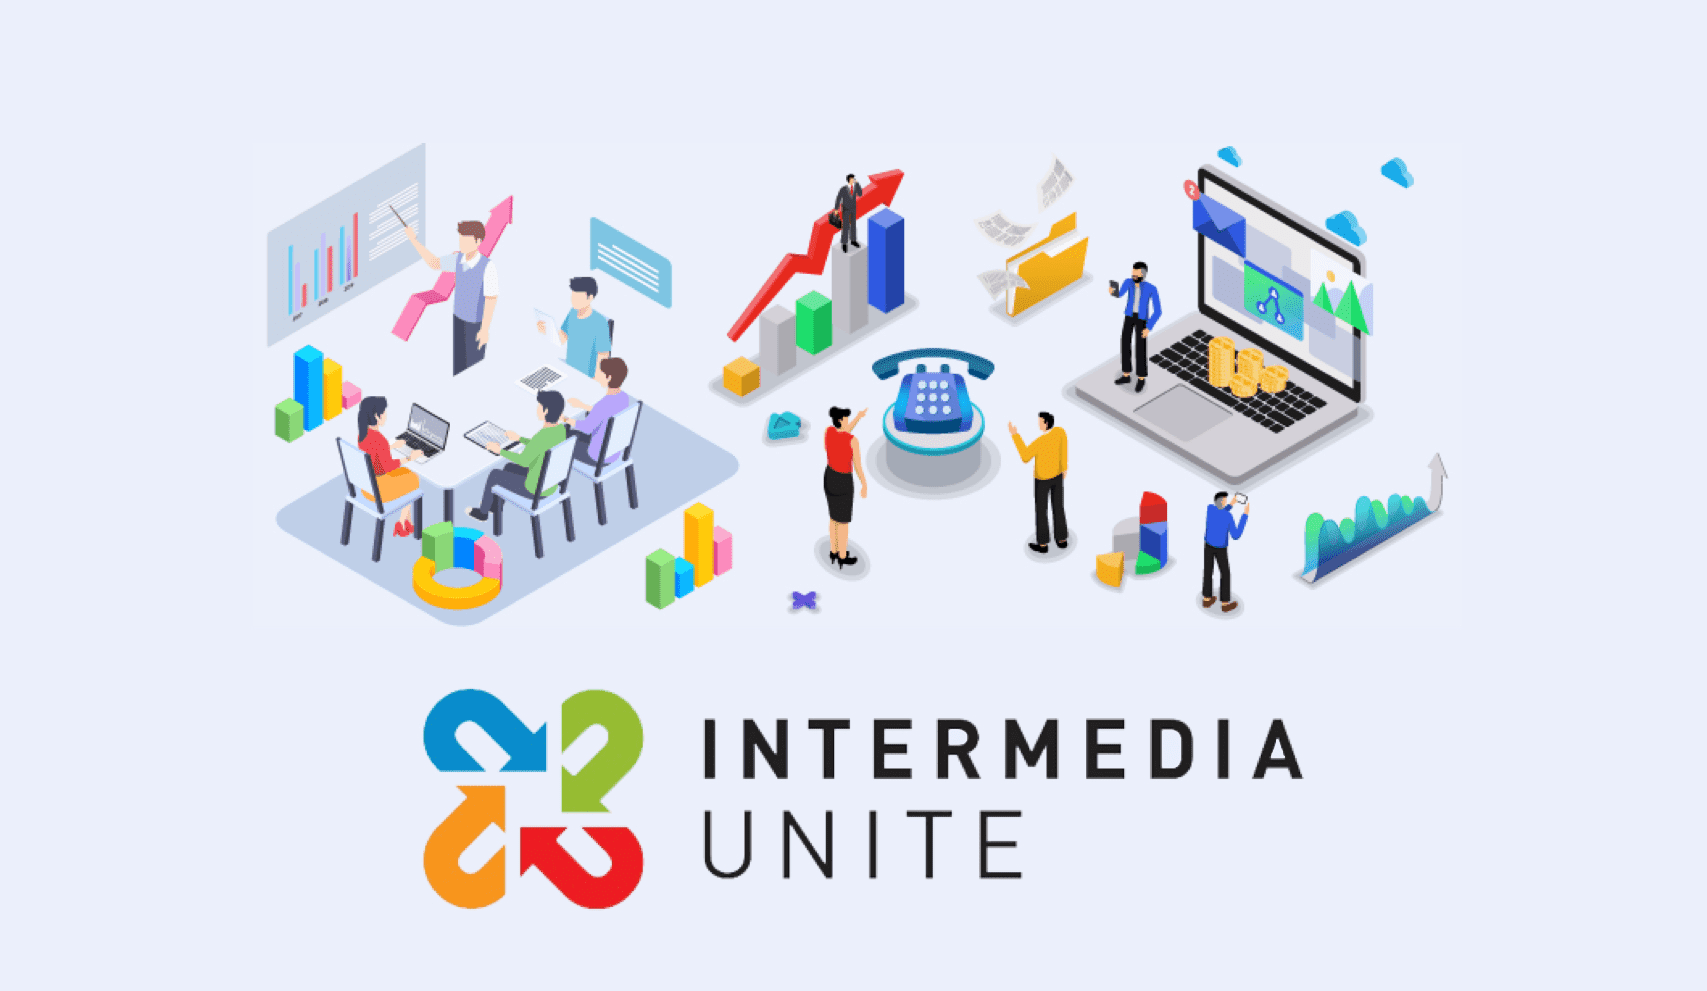 Intermedia Unite Pricing, Plans, Features [2021 Review]